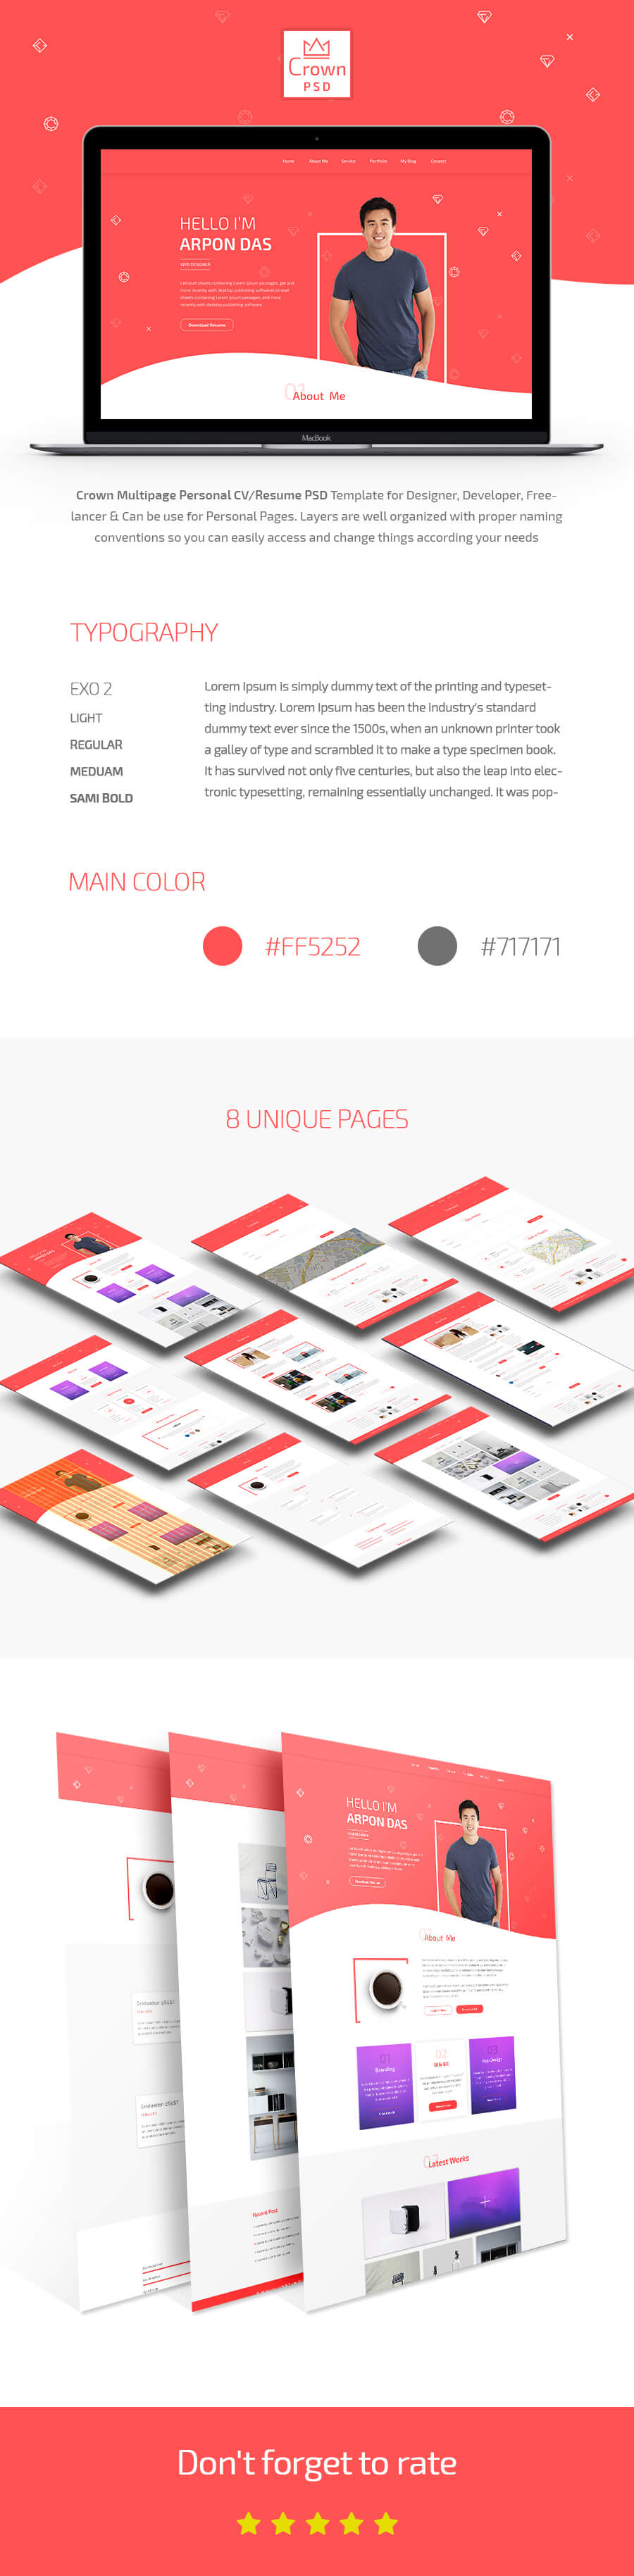 Crown Multipage Personal CV/Resume PSD Template - 1